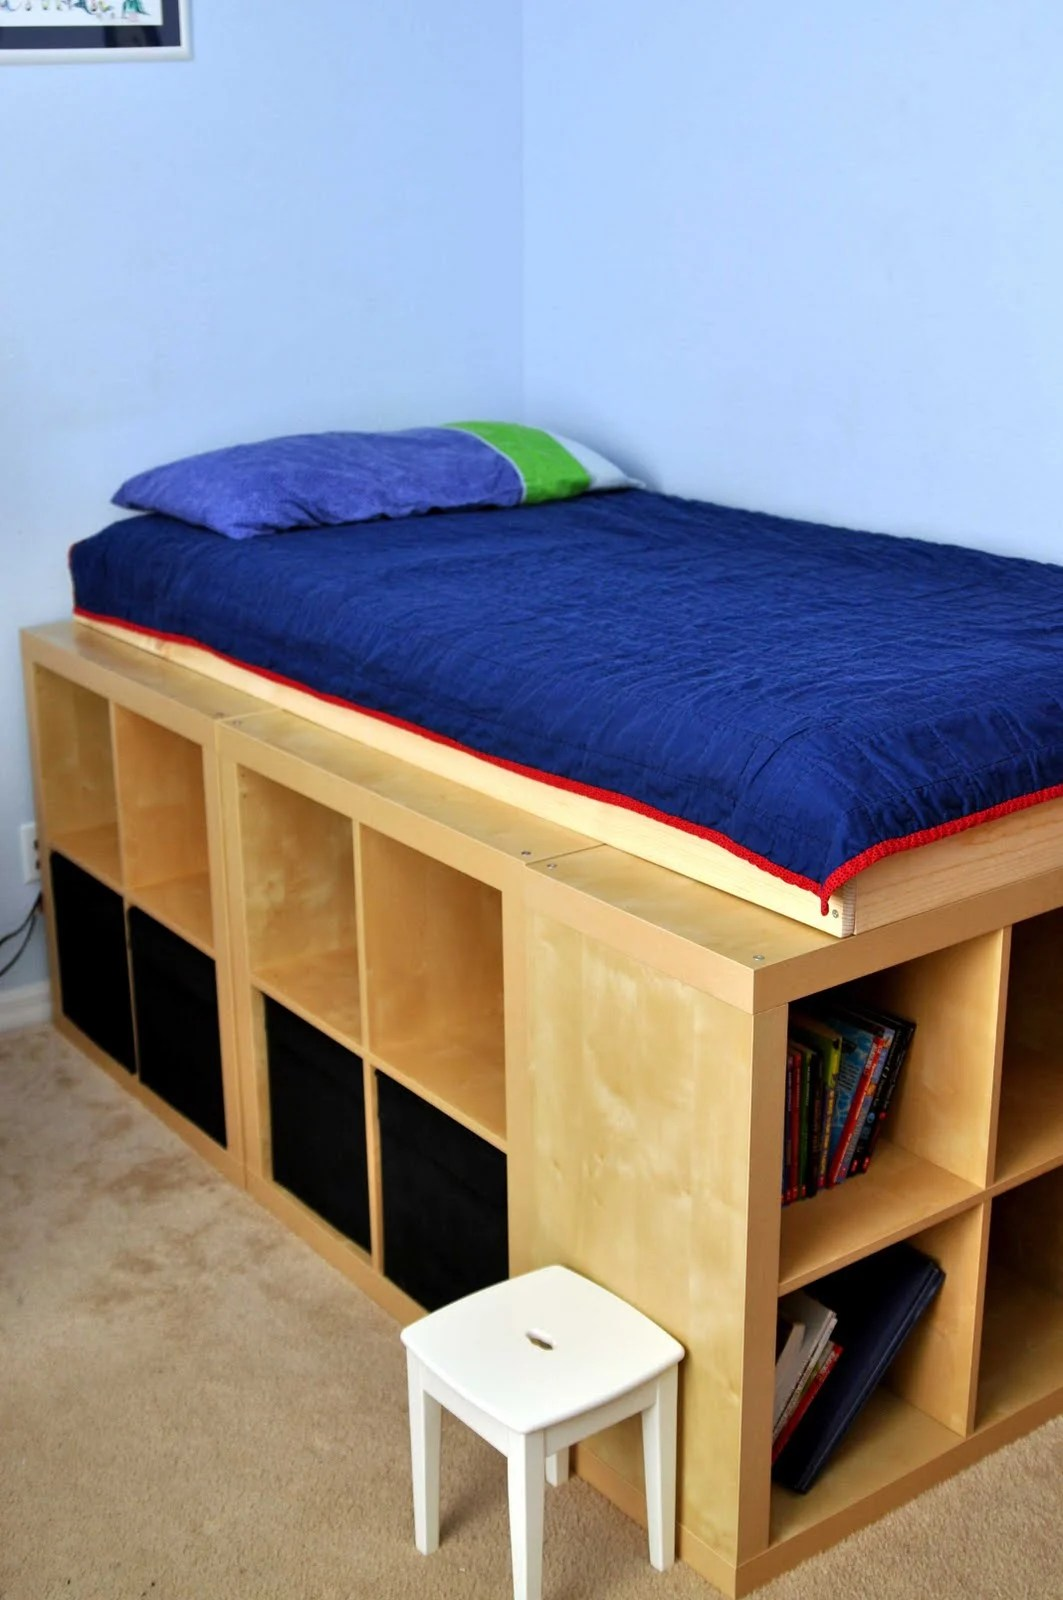 Fancy IKEA Expedit storage bed